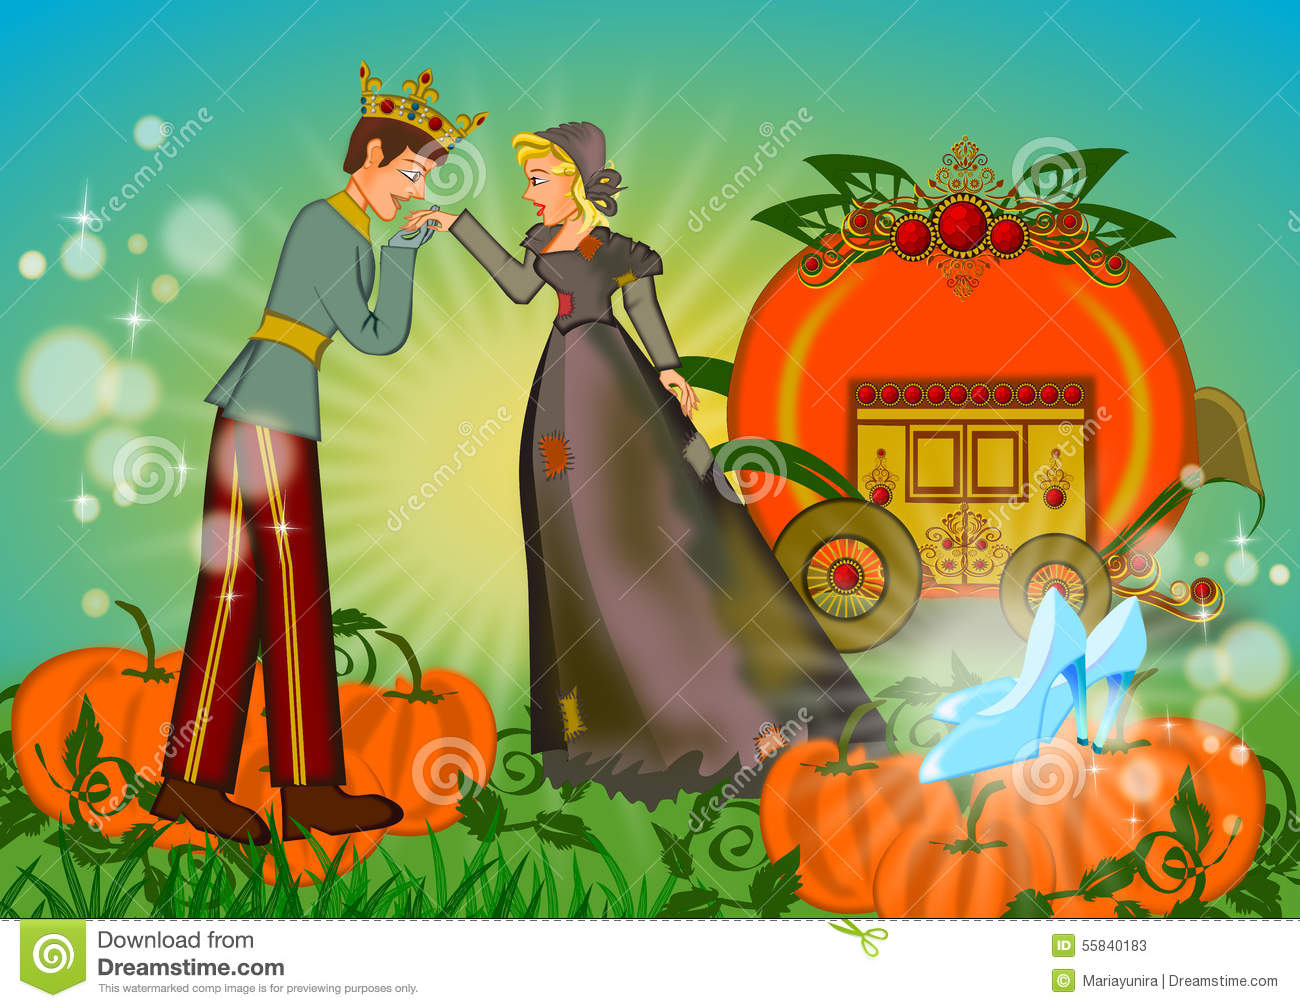 Download Rich And Poor In Love On Cinderella Story Stock Image